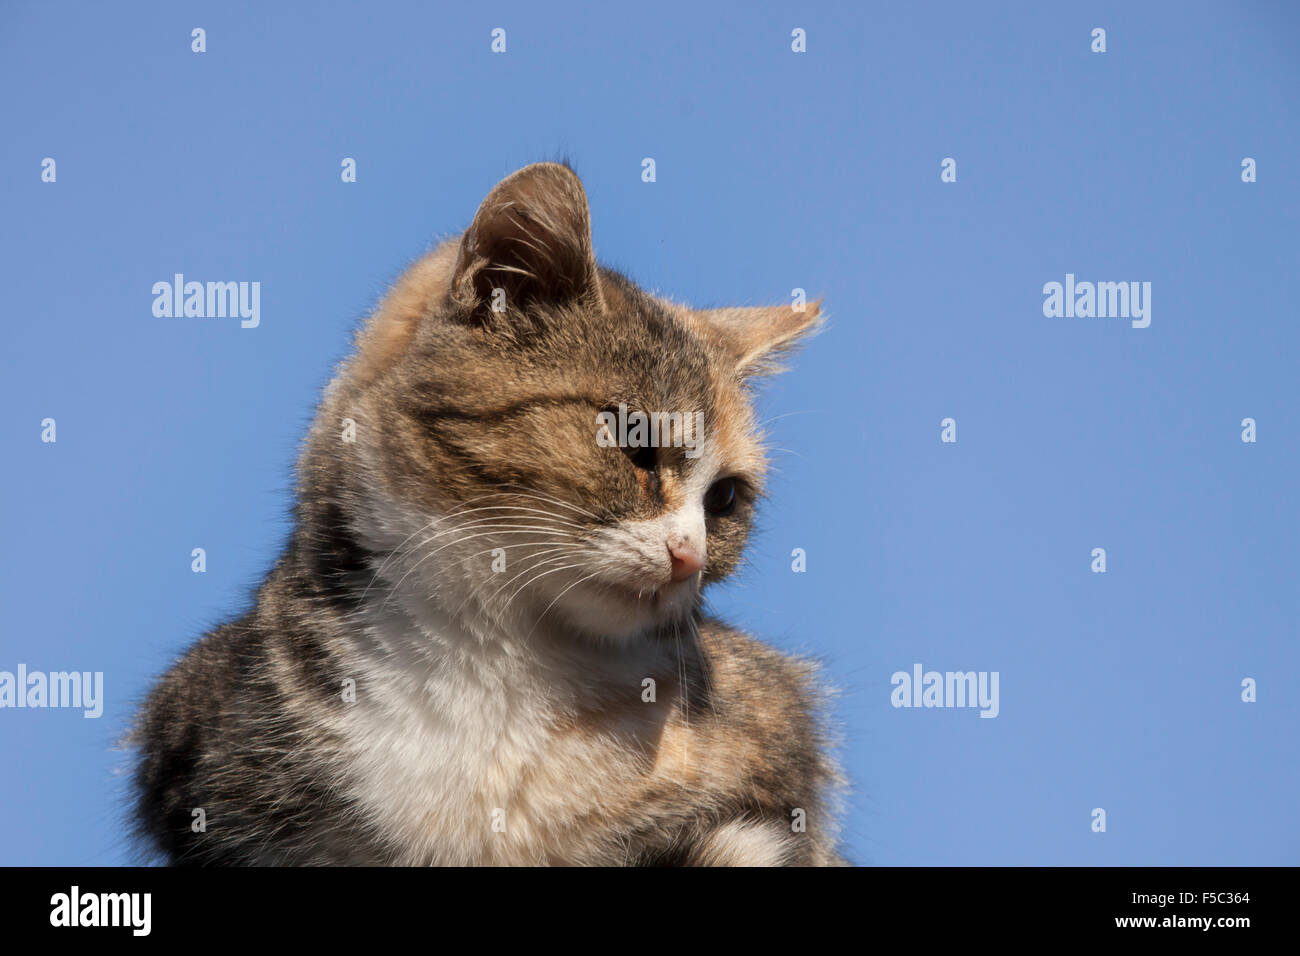 A Tabby house Cat sitting on a Roof, photographed close up with the blue Autumn Sky as backdrop. - Stock Image